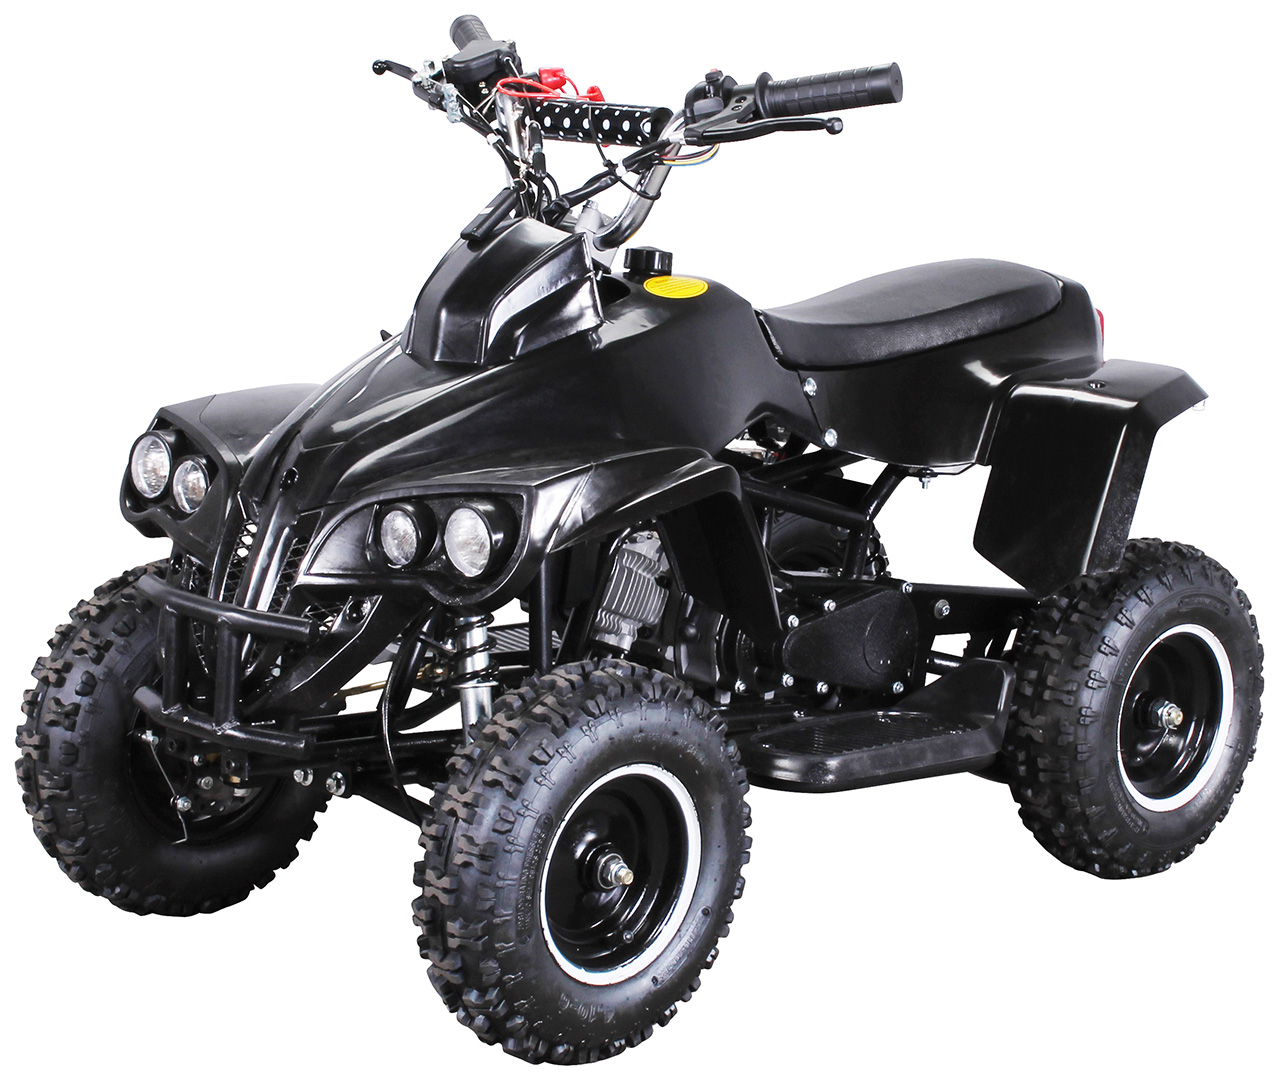 mini kinder atv rhino 49 cc pocketquad farmer 2 takt quad. Black Bedroom Furniture Sets. Home Design Ideas